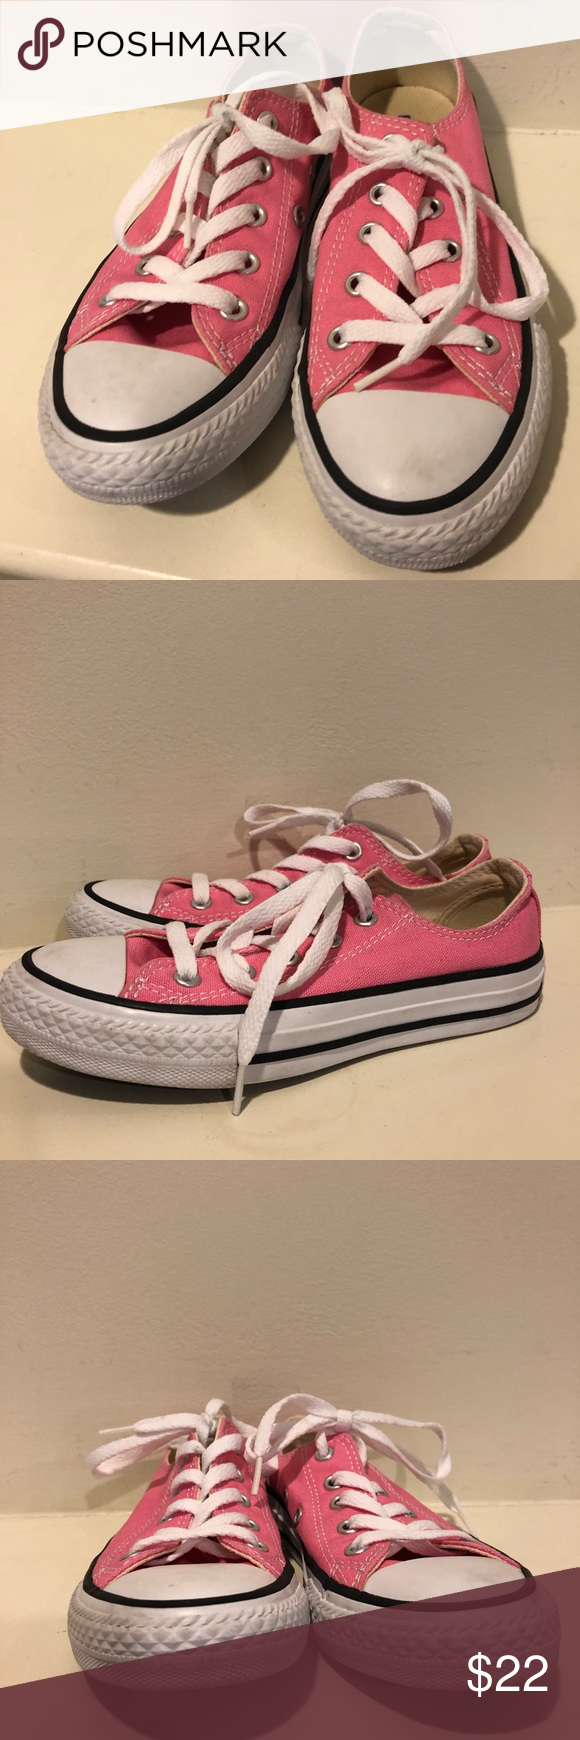 a3921df9d40c Converse little girls  pink Chuck Taylor size 13 Classic Chuck Taylor s ( Converse) in a little kids size! Gently used but bottoms are like new.